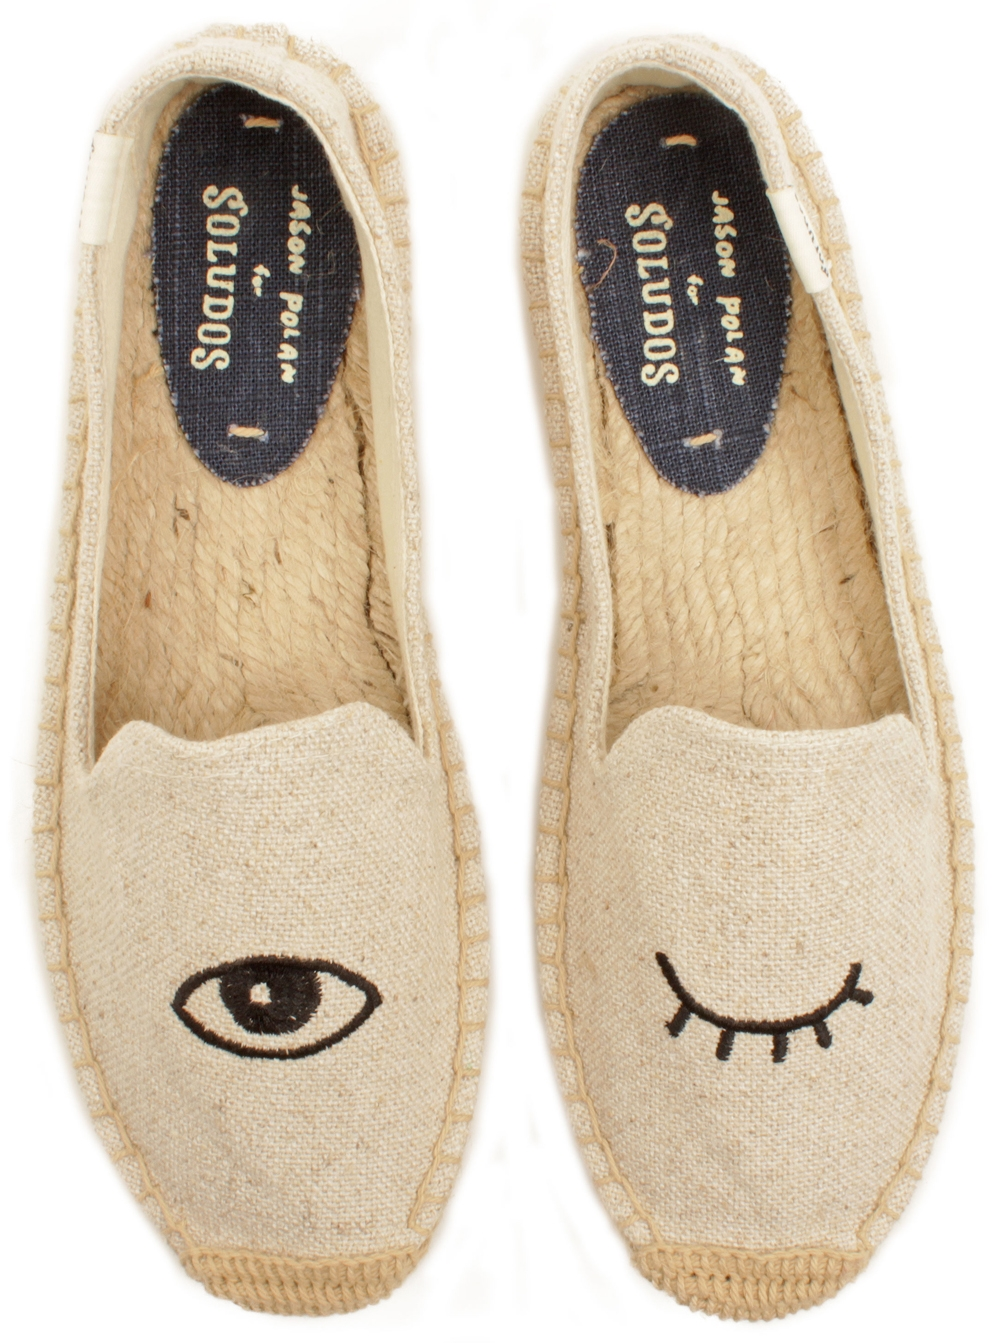 """Wink"" Slippers (cute & super comfy!)"